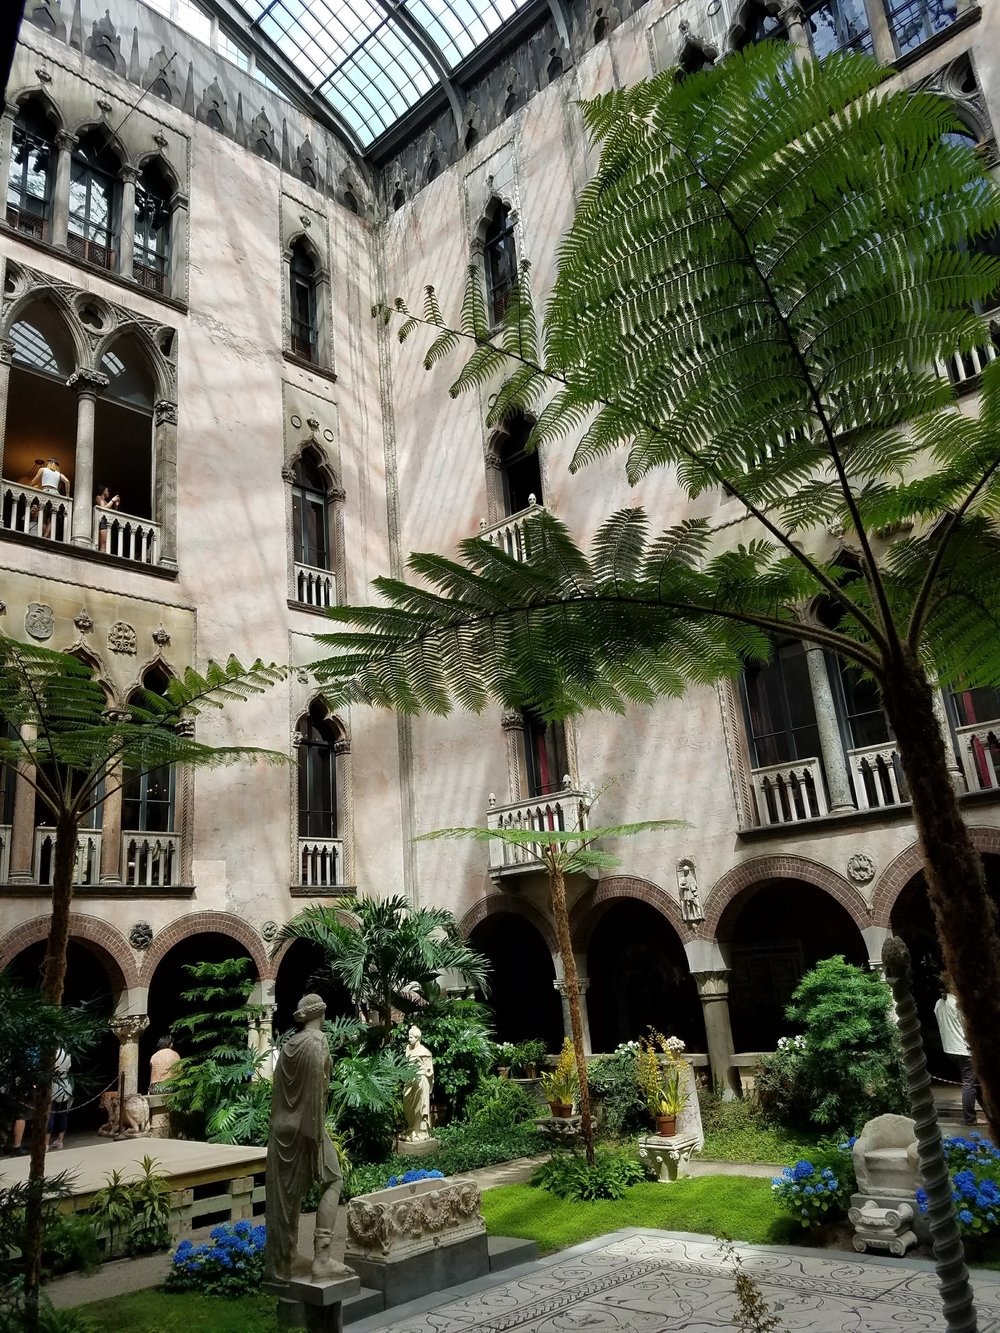 Courtyard in the Isabella Stewart Gardner Museum in Boston, MA.